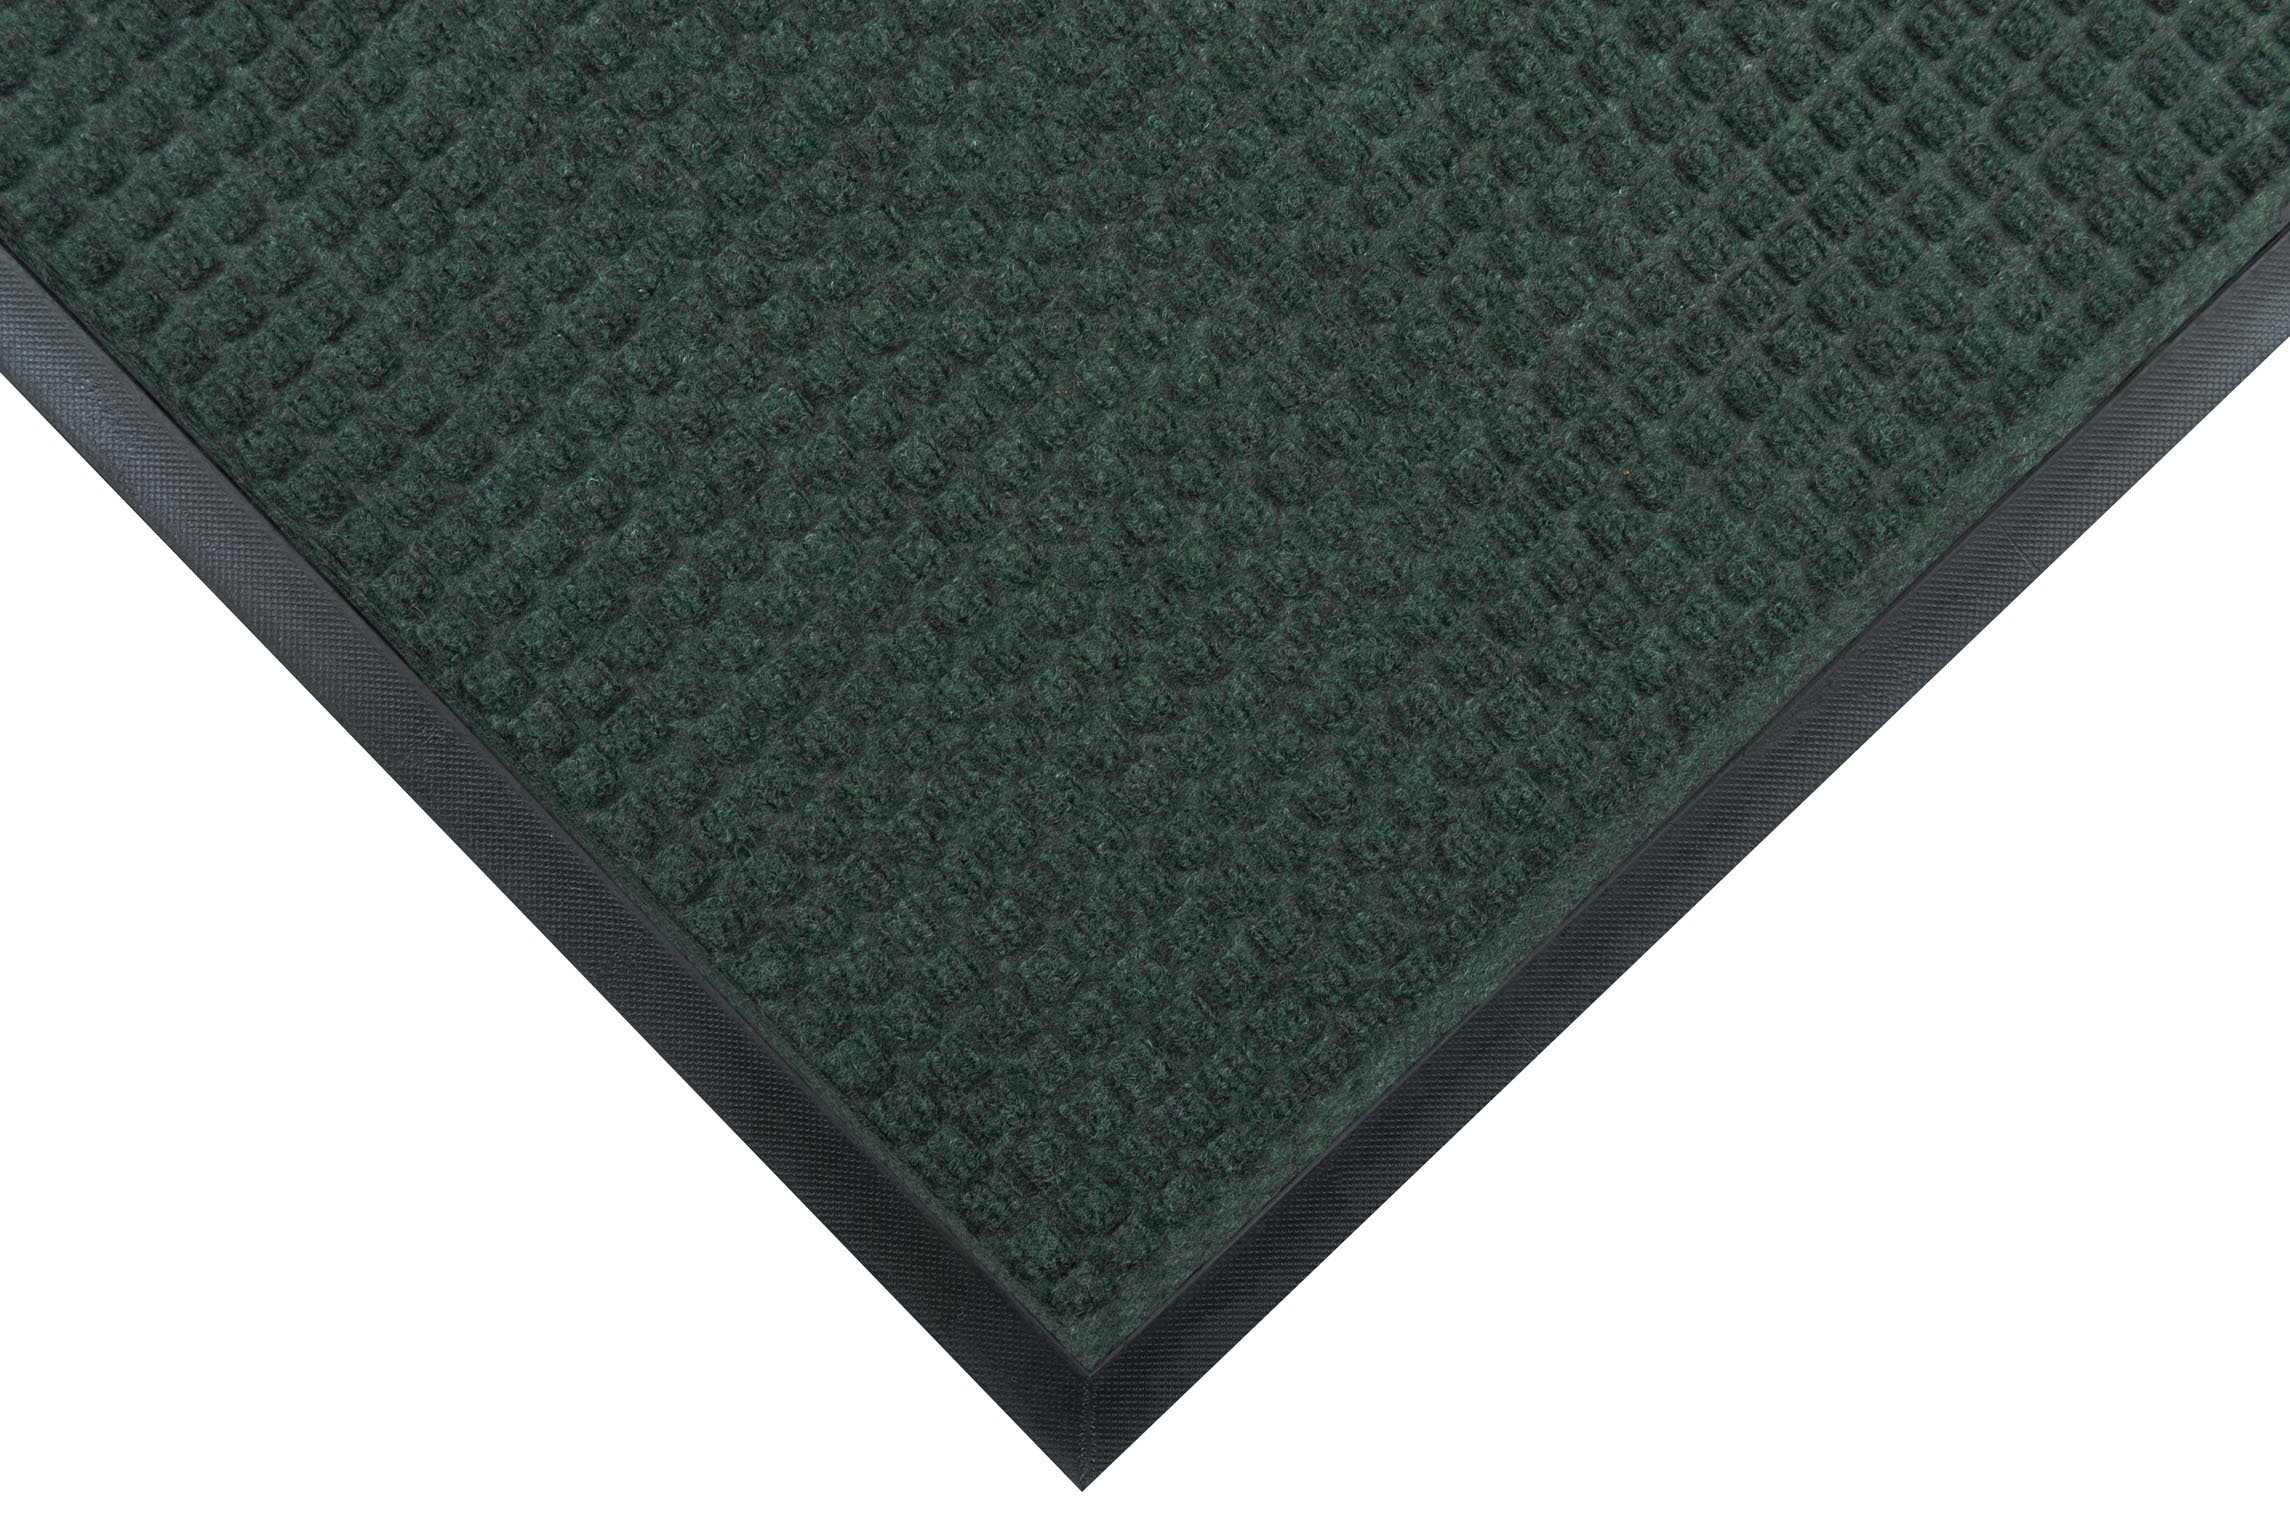 Notrax 166 Guzzler Entrance Mat, for Lobbies and Entranceways, 4' Width x 10' Length x 1/4'' Thickness, Hunter Green